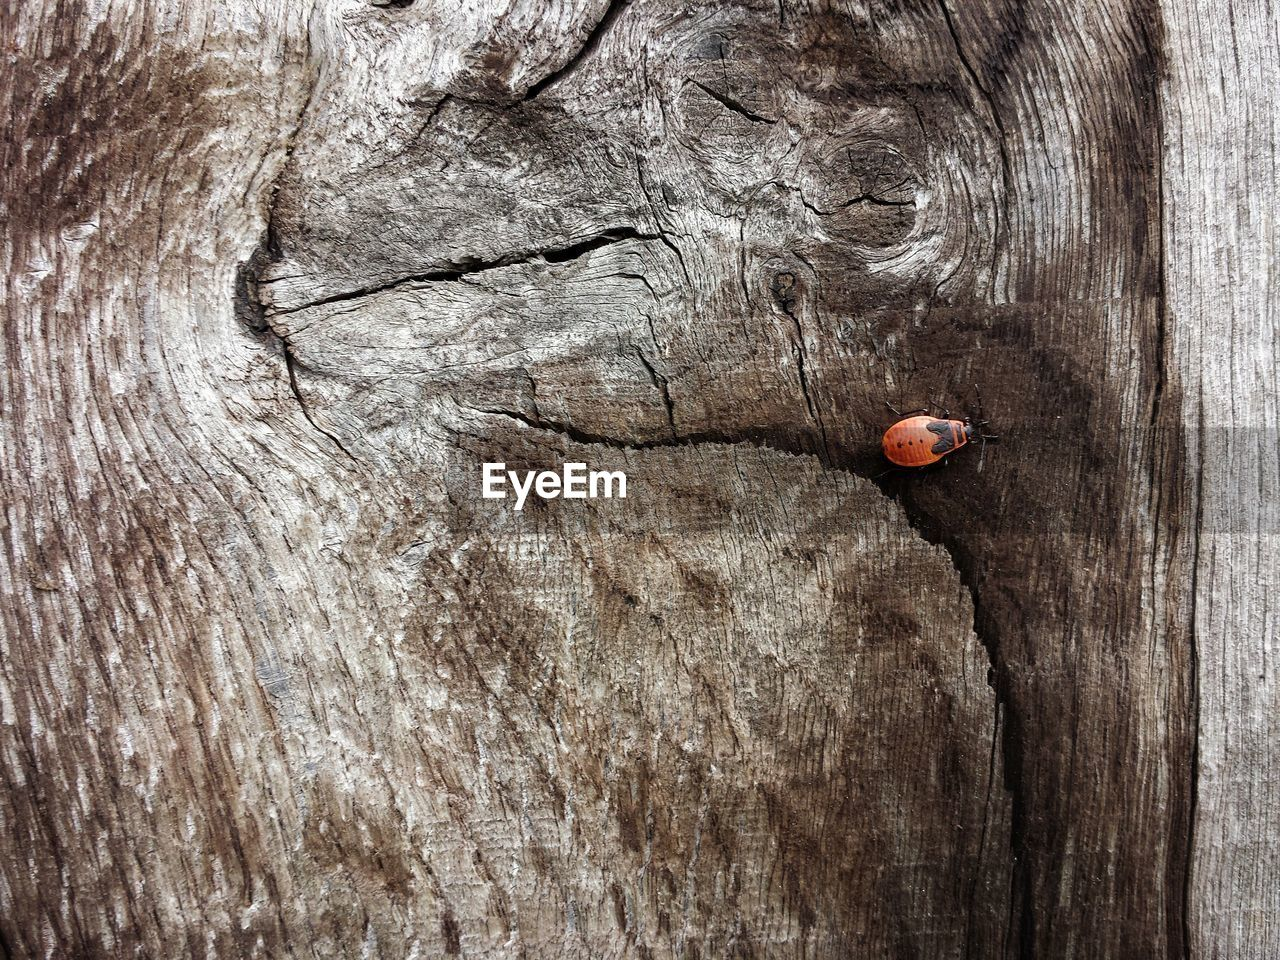 wood - material, textured, red, day, no people, close-up, food, tree, food and drink, tree trunk, trunk, outdoors, rough, brown, directly above, plant, ladybug, insect, fruit, invertebrate